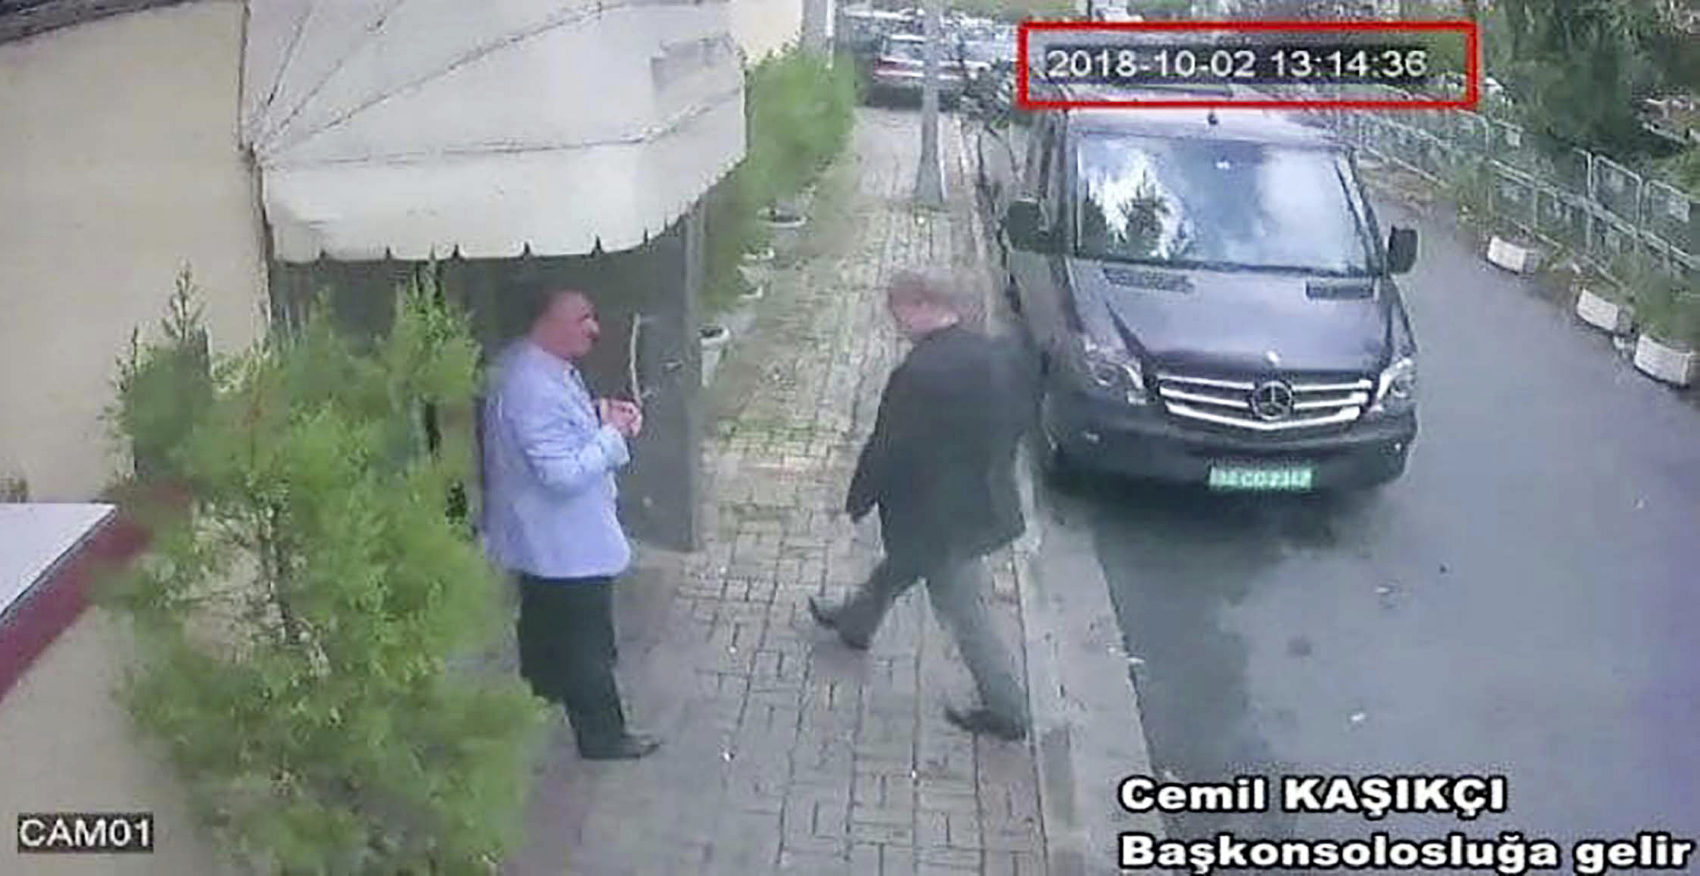 This image taken from CCTV video obtained by the Turkish newspaper Hurriyet and made available on Tuesday, Oct. 9, 2018 claims to show Saudi journalist Jamal Khashoggi entering the Saudi consulate in Istanbul, Tuesday, Oct. 2, 2018. (CCTV/Hurriyet via AP)